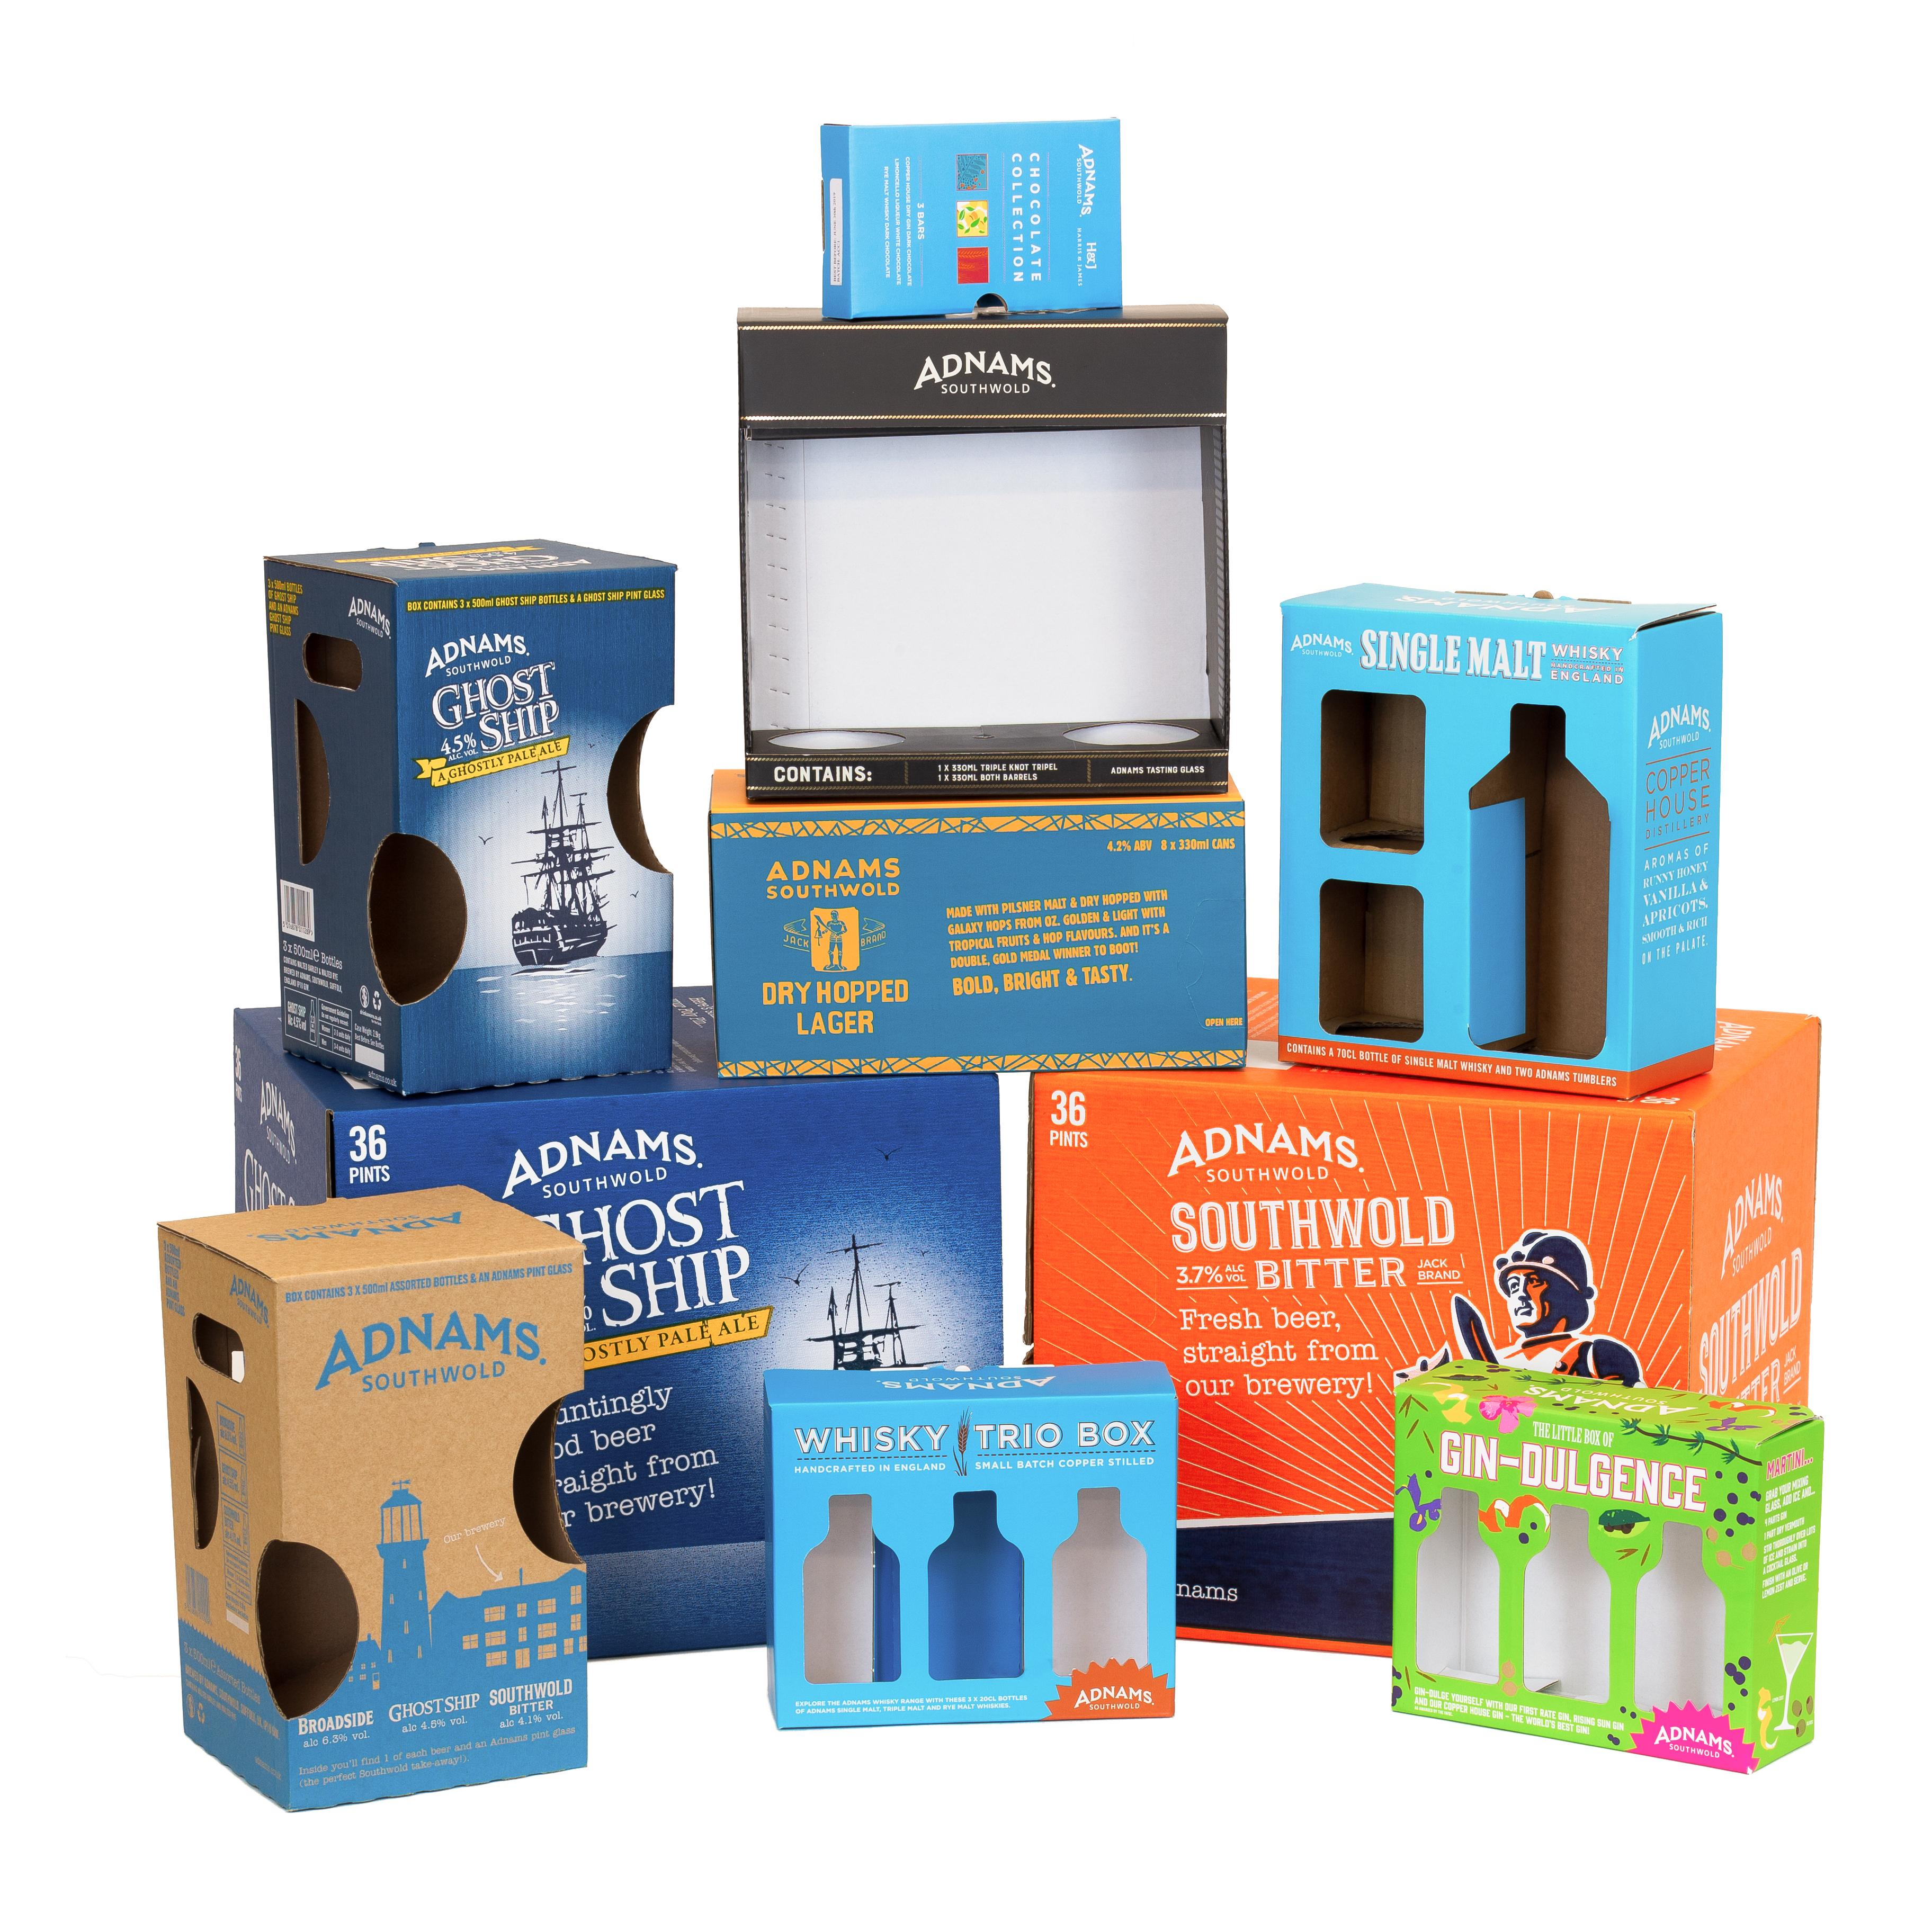 Adnams Corrugated Packaging. Saxon Packaging. 01502 513112.